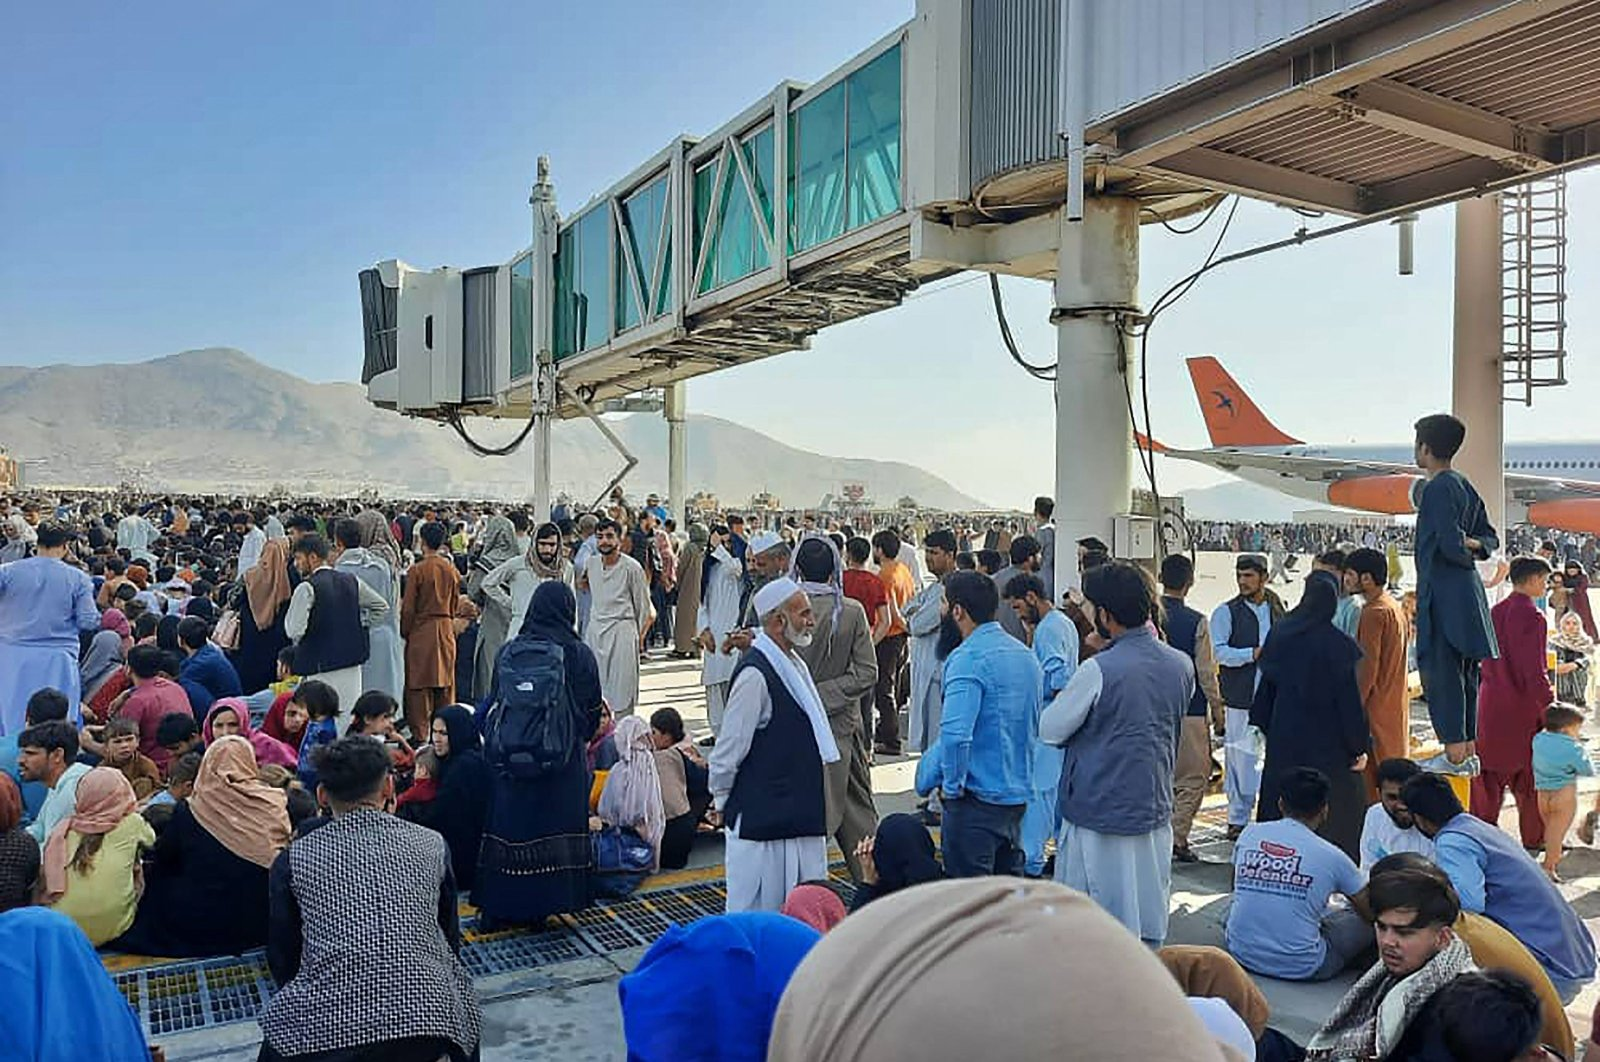 Afghans crowd the tarmac of the Kabul airport to flee the country as the Taliban take control of Afghanistan after President Ashraf Ghani fled the country and conceded the insurgents had won the 20-year war, Kabul, Afghanistan, Aug. 16, 2021. (AFP File Photo)